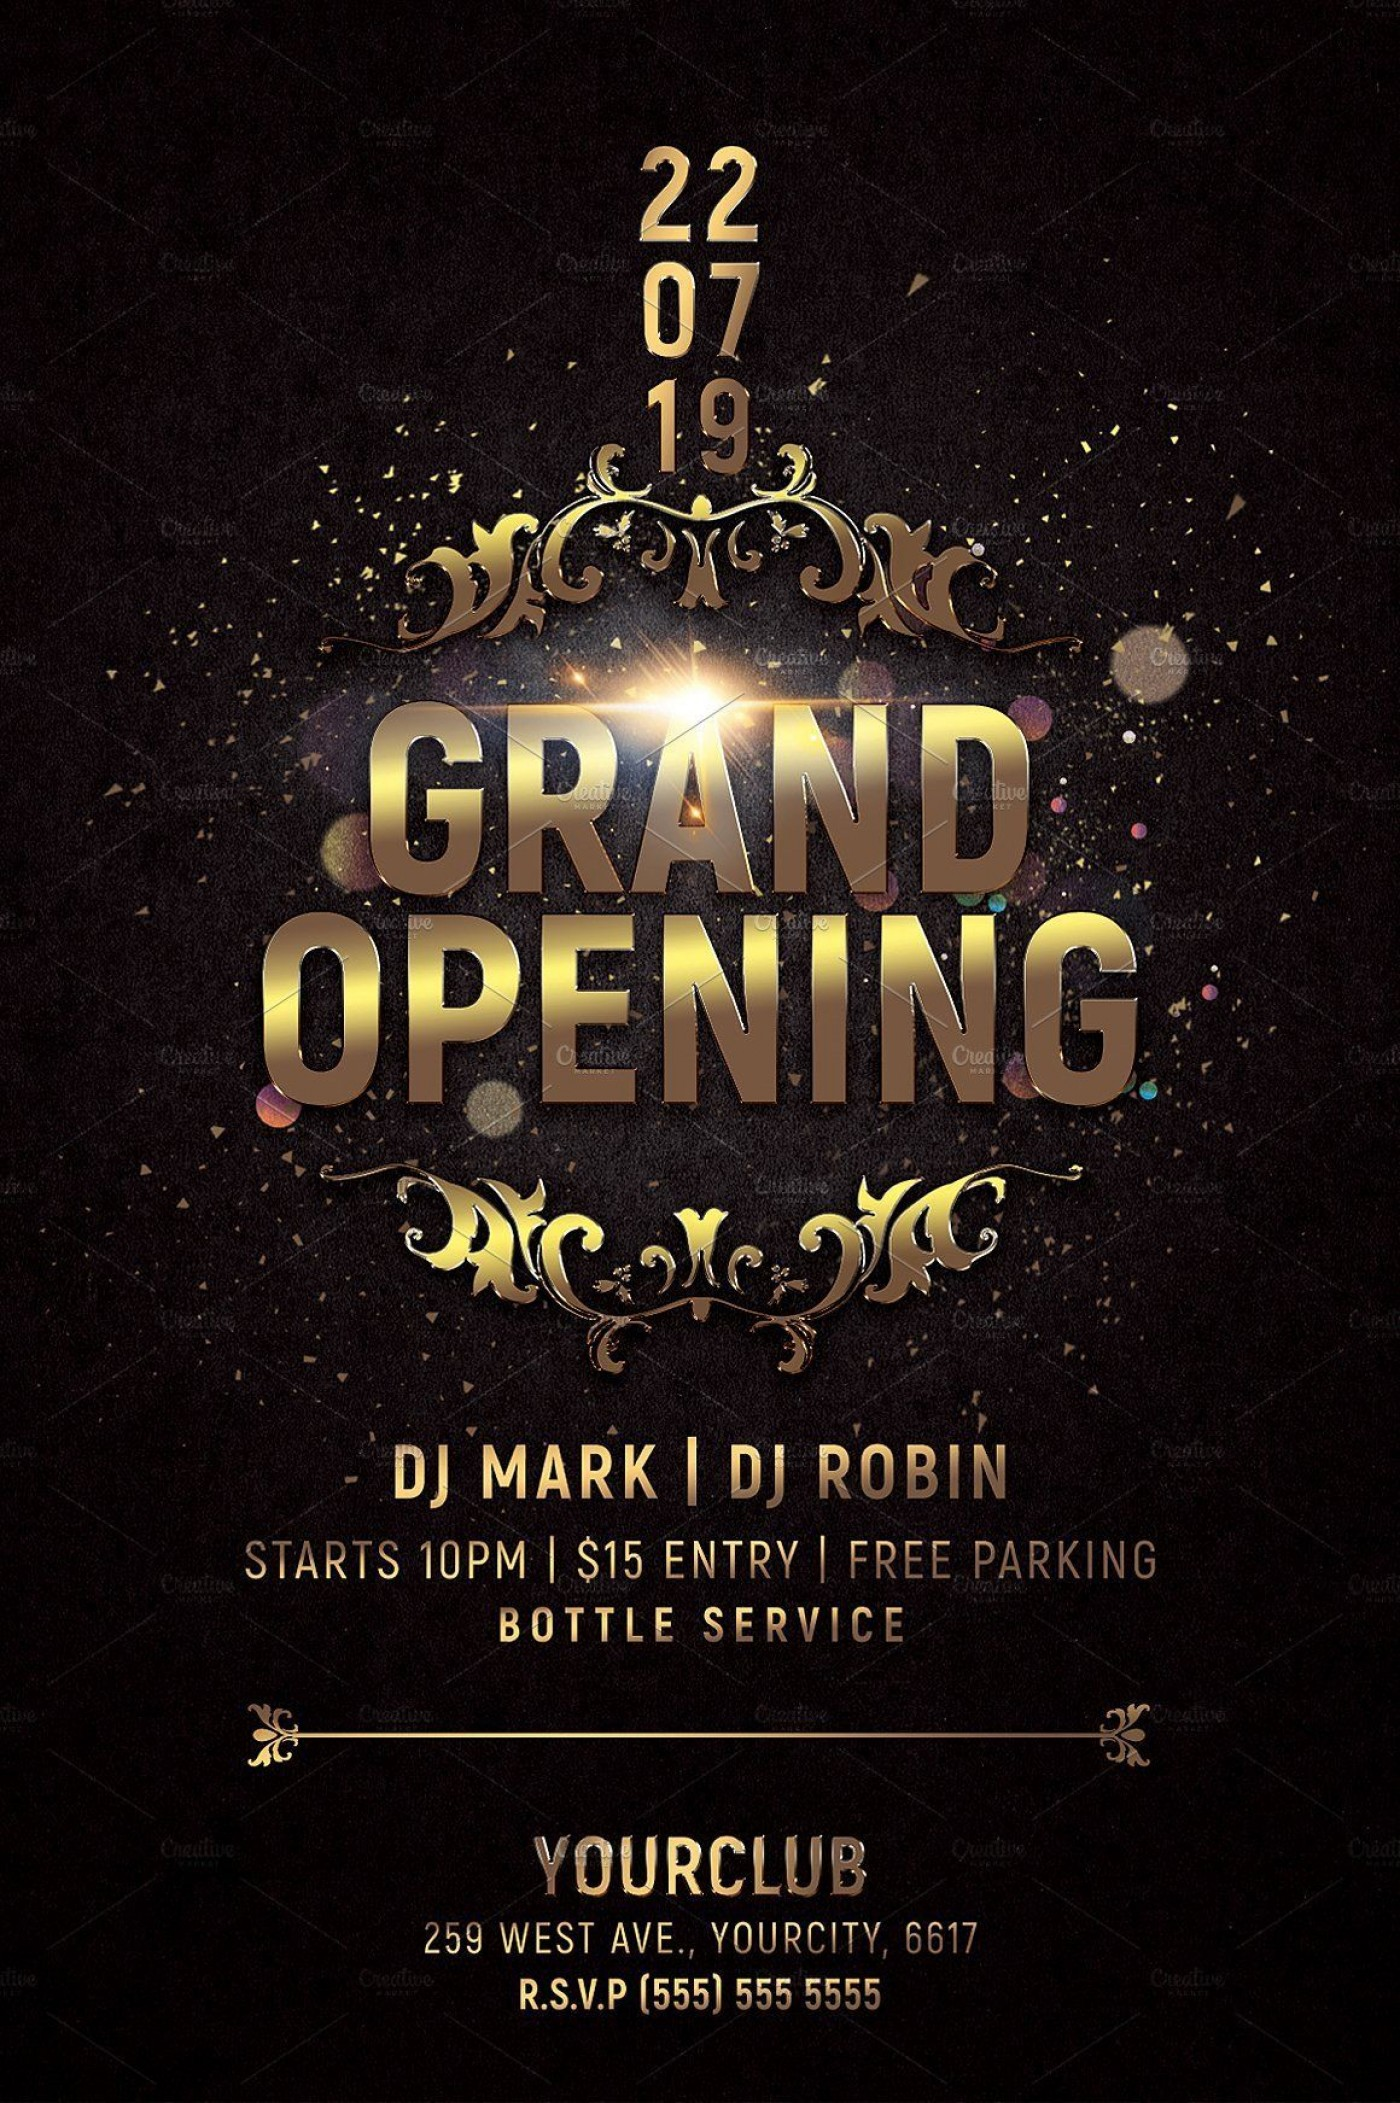 000 Awful Grand Opening Flyer Template Photo  Free Psd Busines1400